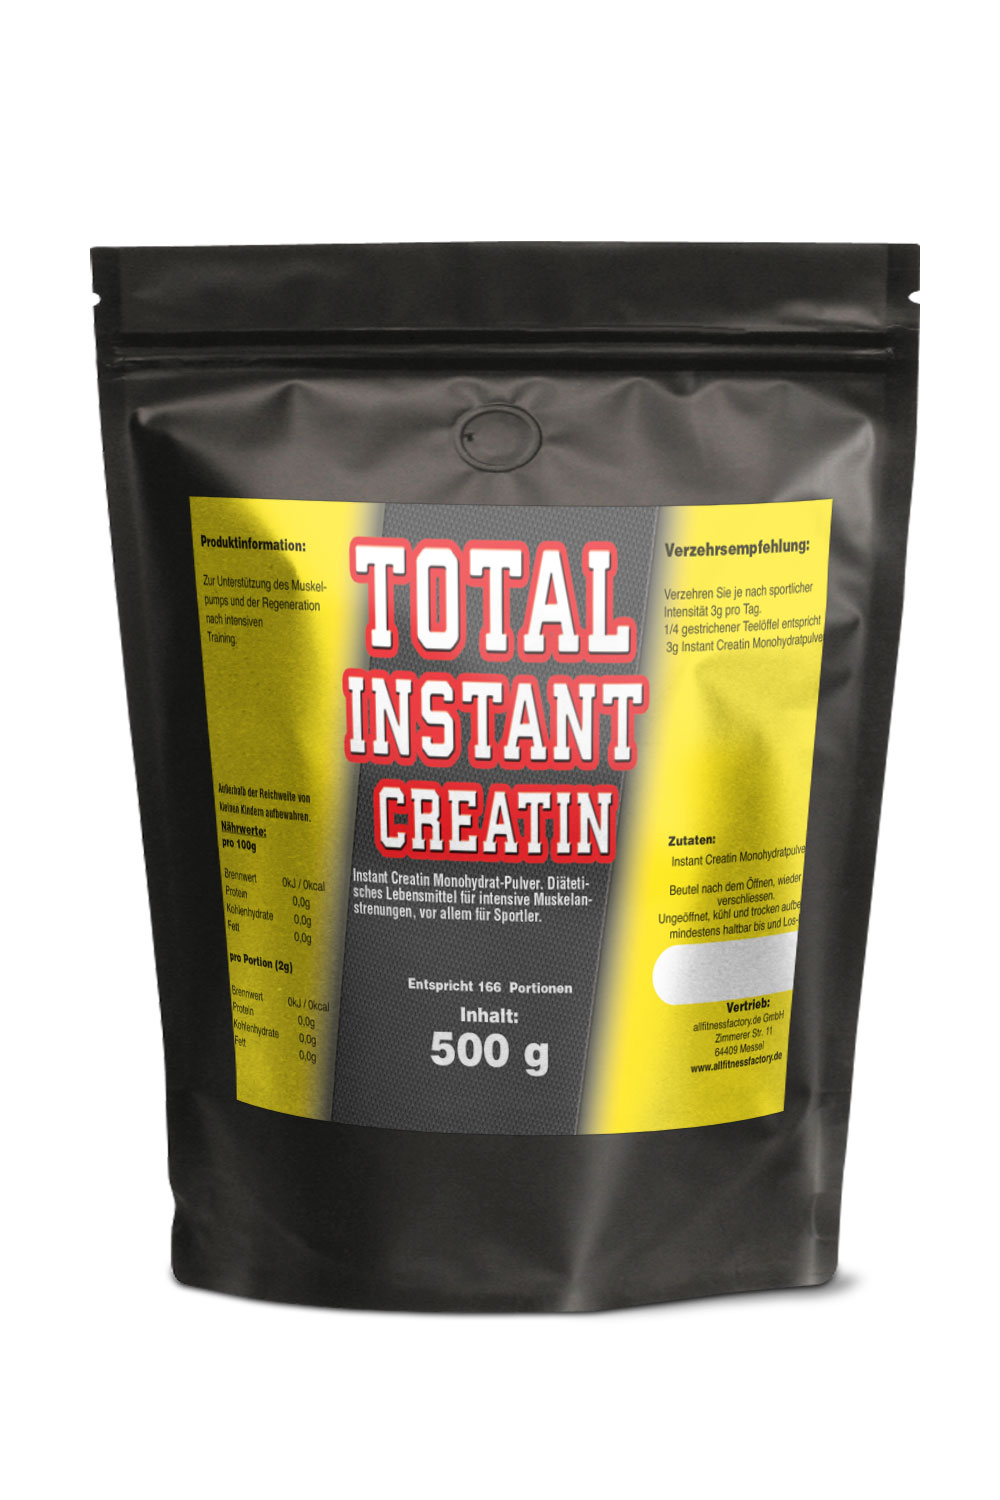 Total INSTANT Creatin Monohydrat 500g Instant Kreatin